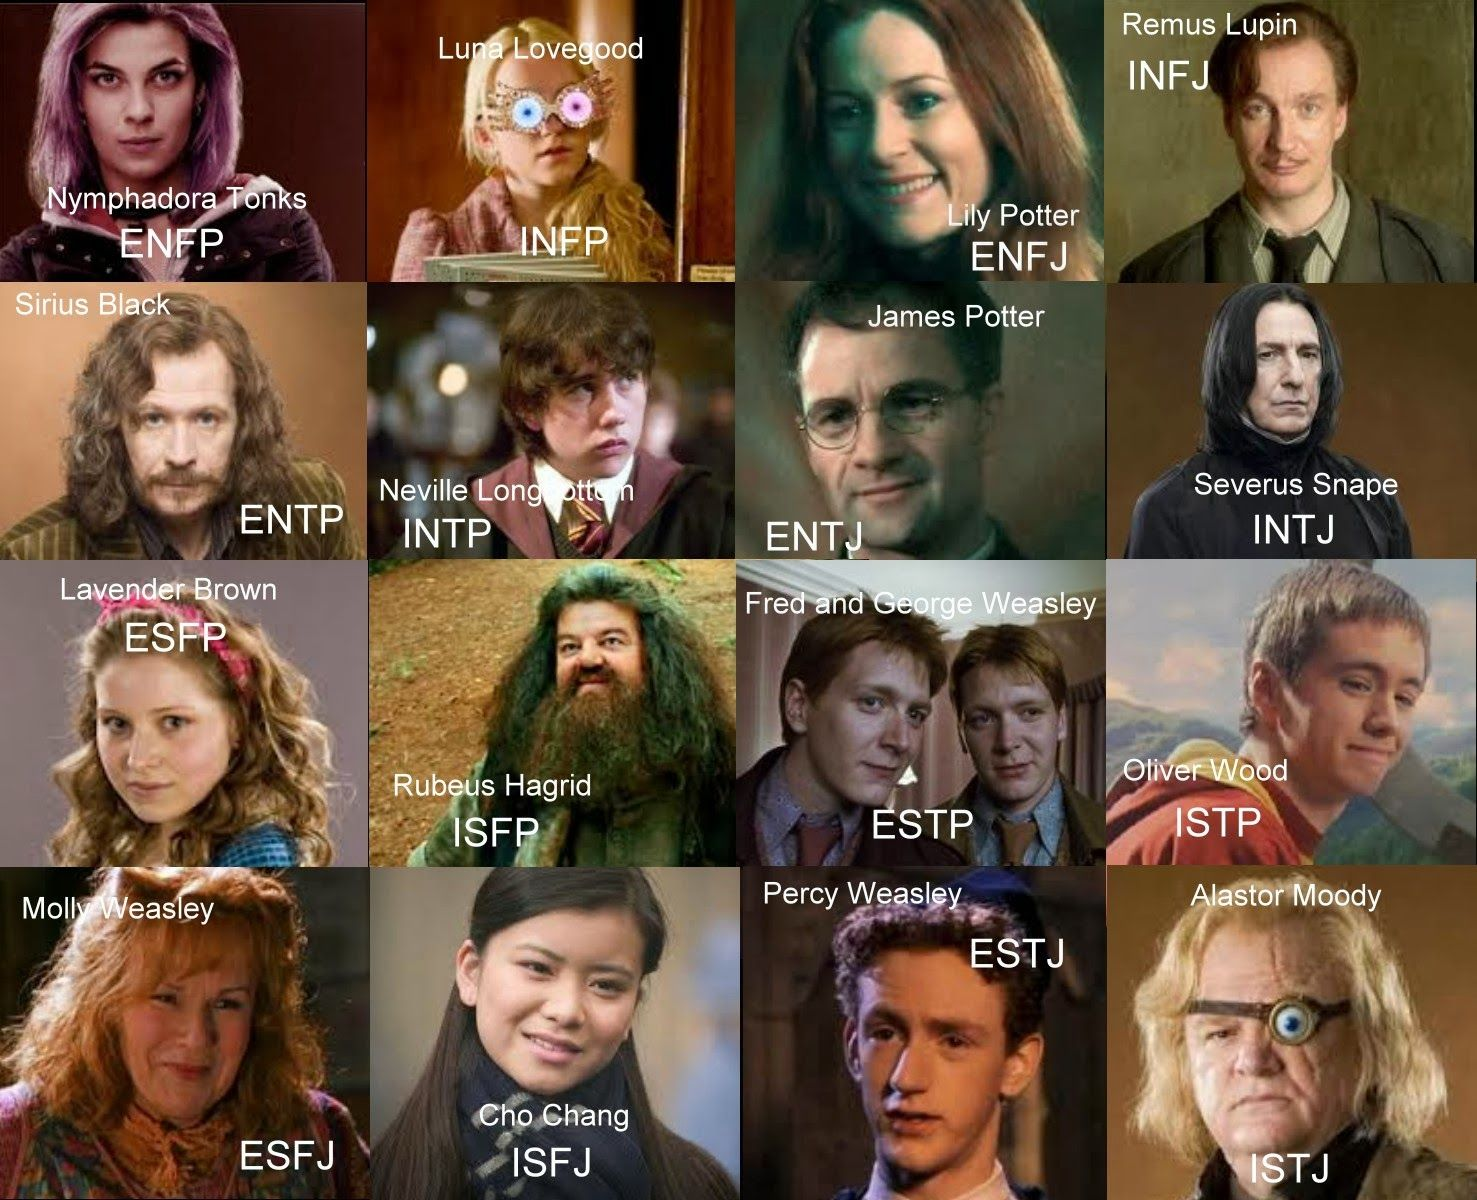 INFJ Characters & Celebrities on Pinterest | Personality Types, Infp ...